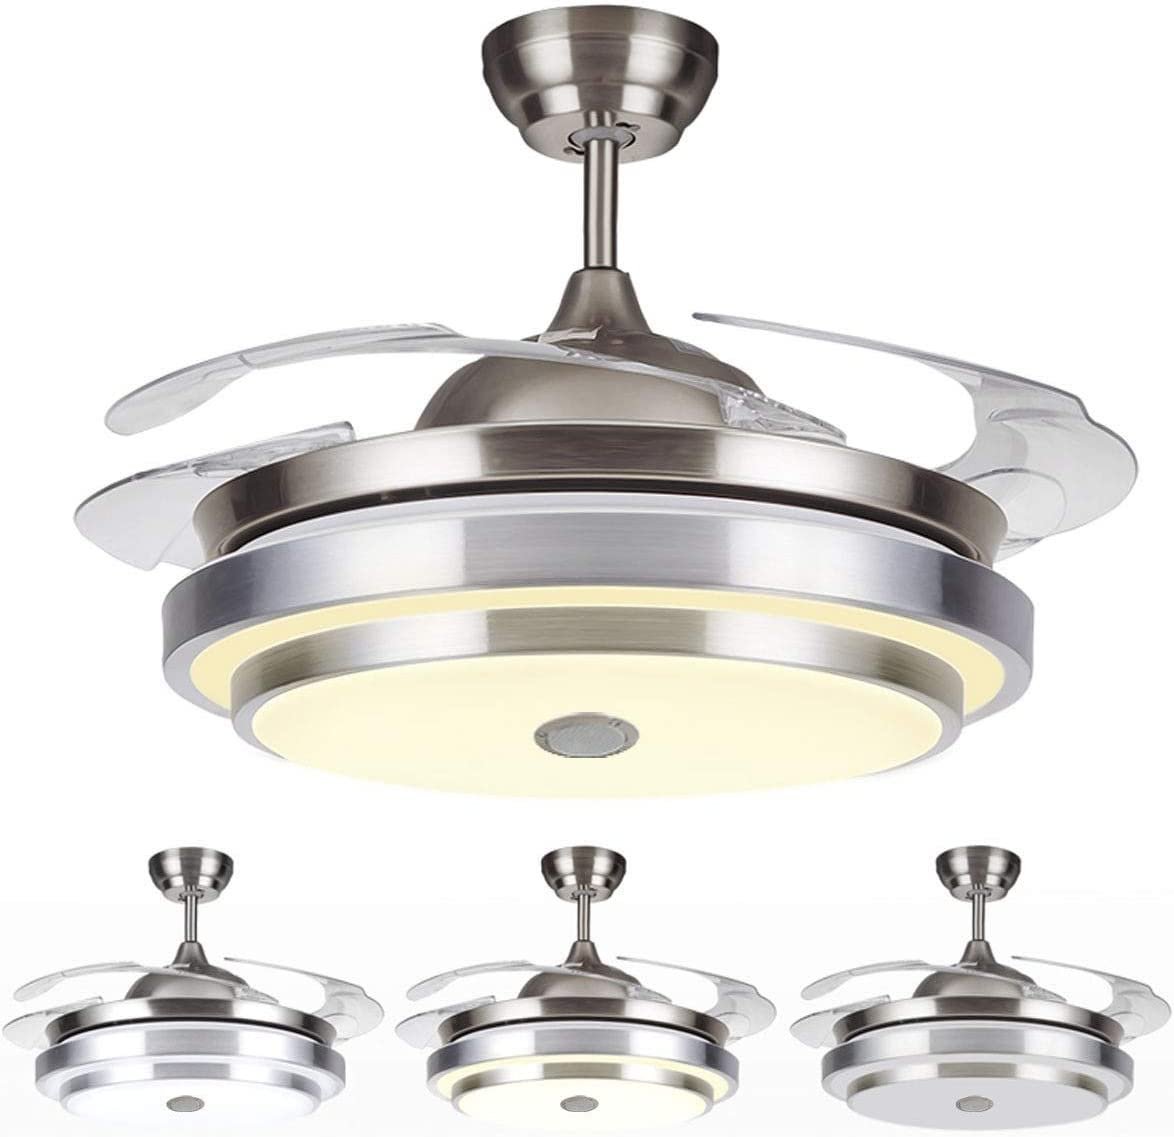 Tengchang 144 LED Remote Ceiling Fan Light Warm cool white W Bluetooth speaker 4 Blades 42 inch